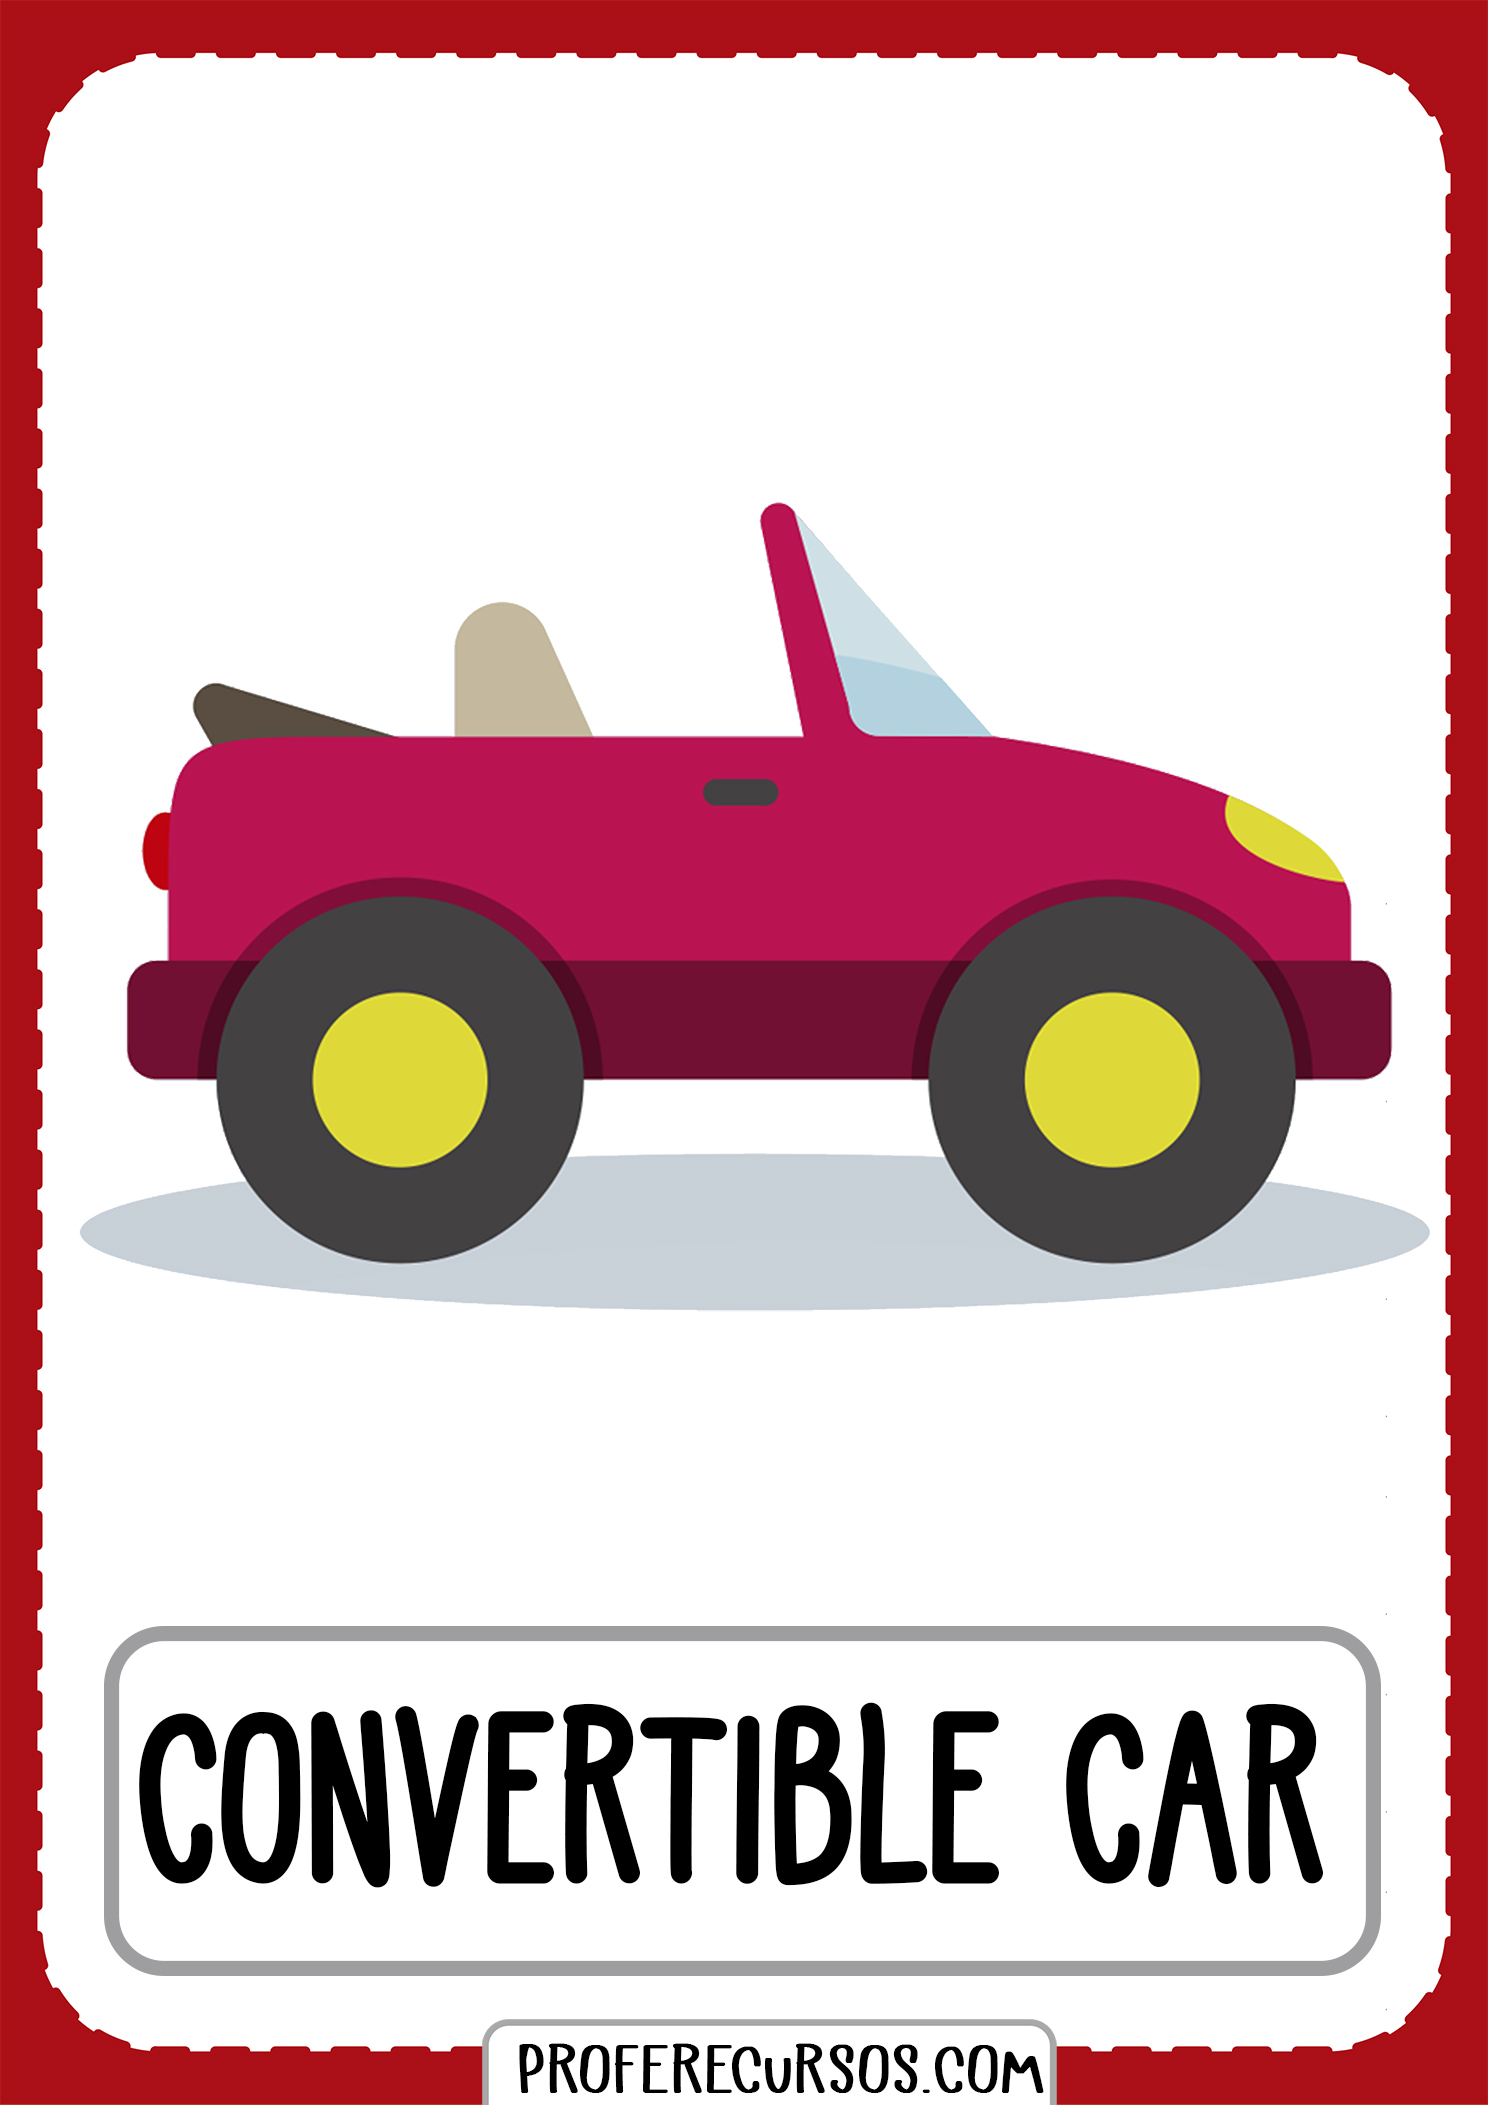 Means-of-transport-vocabulary-convertible-car